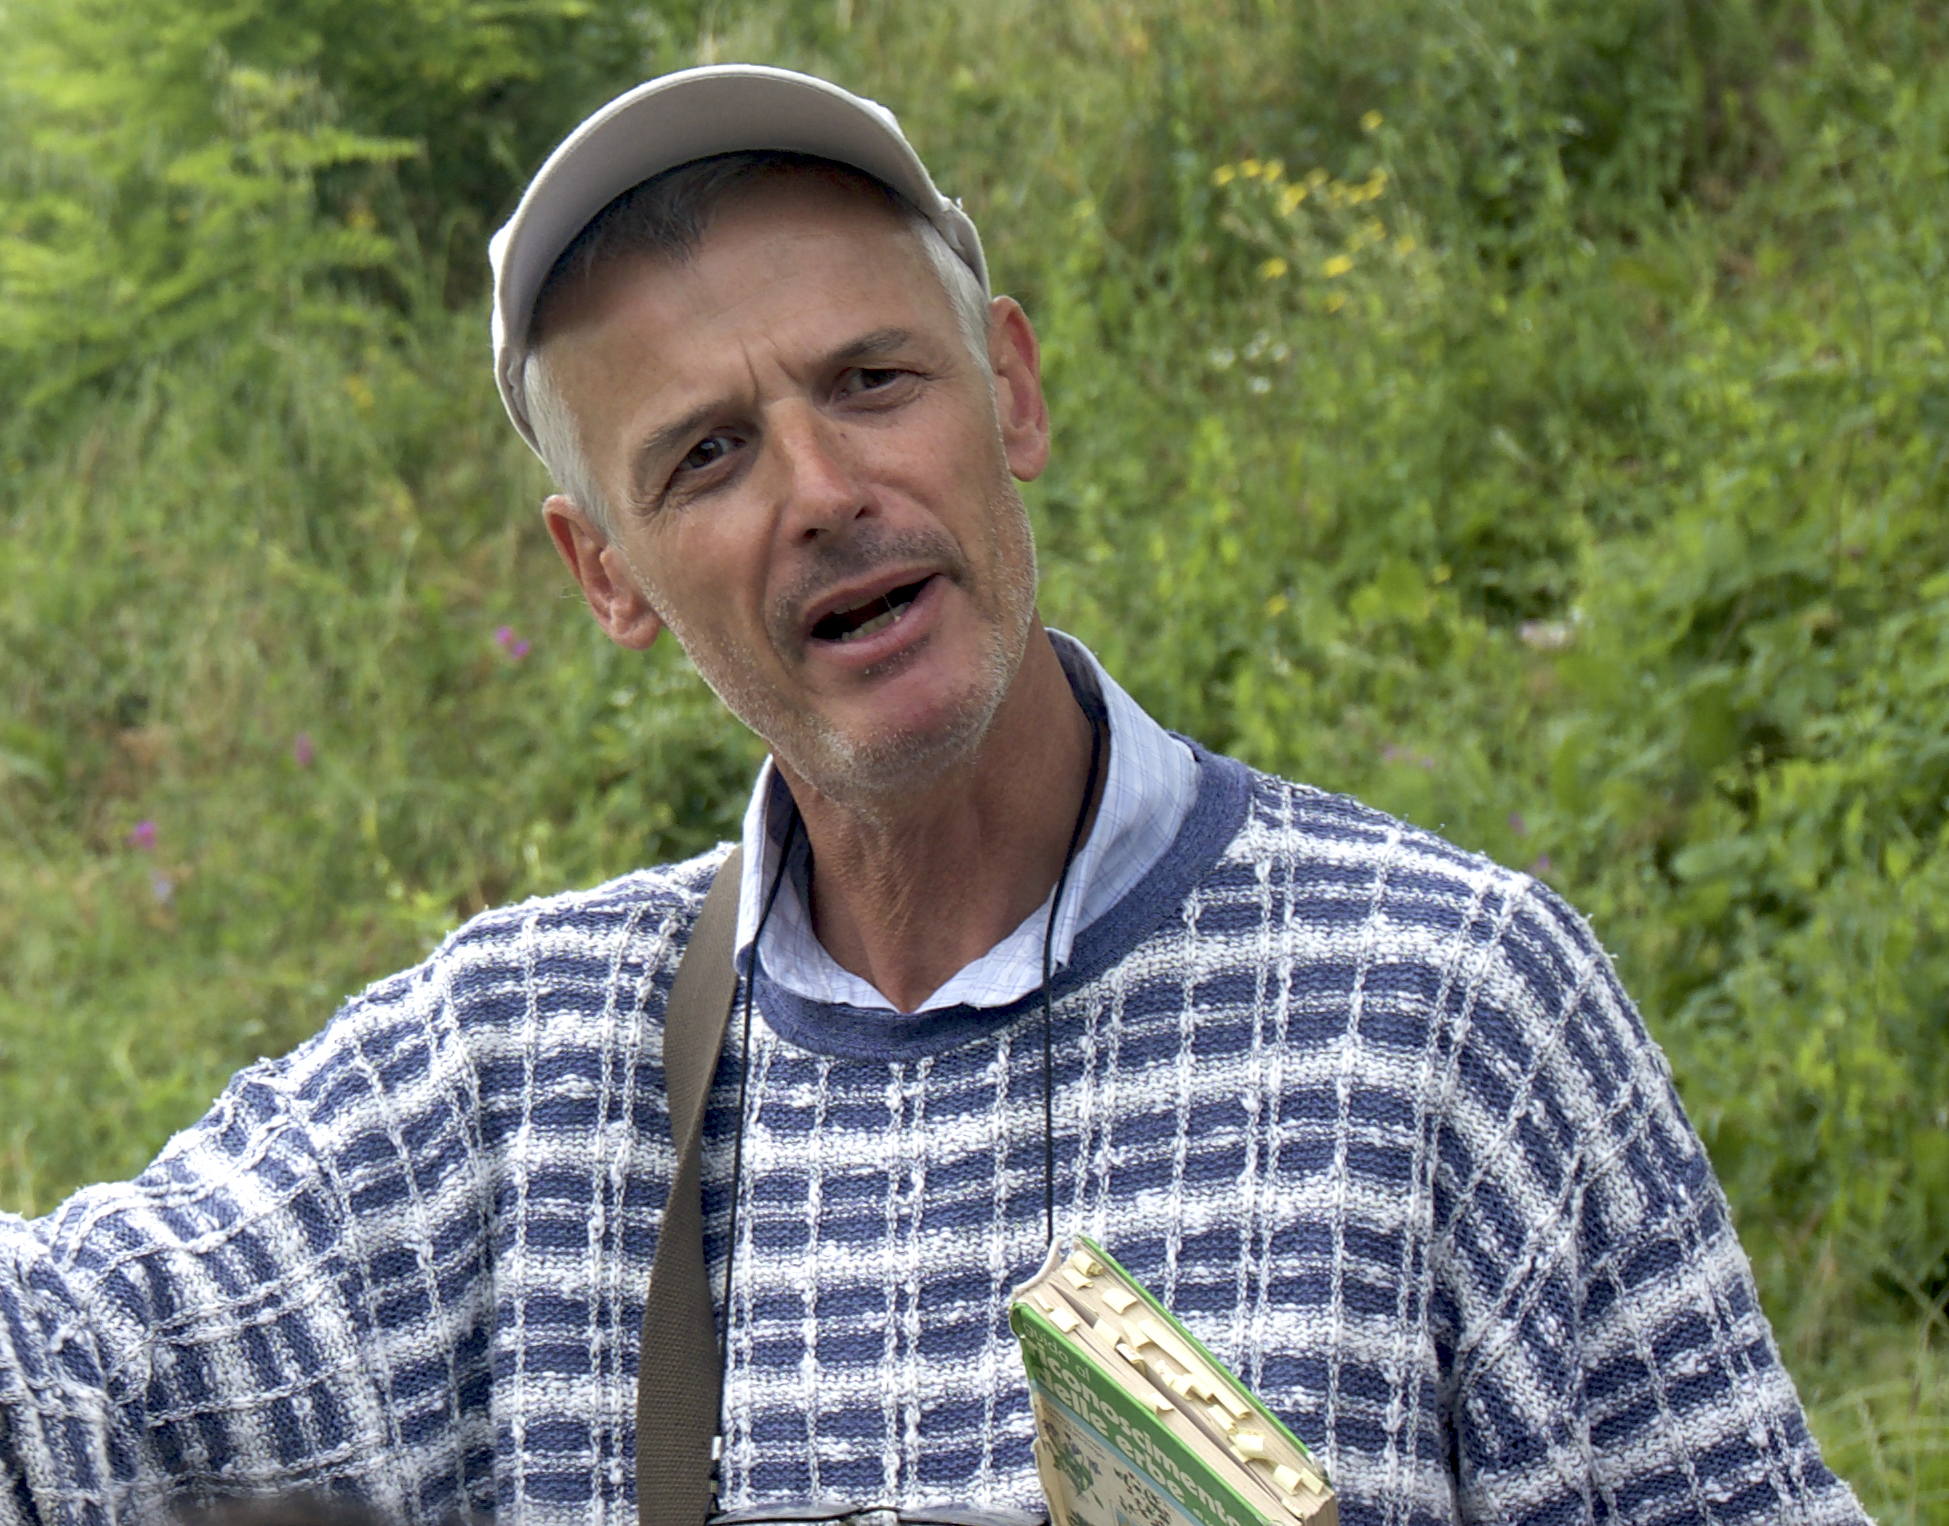 Local biologist, Enrico Rivella, who selected Rivetto winery as a case study research project for biodiversity in the Langhe.